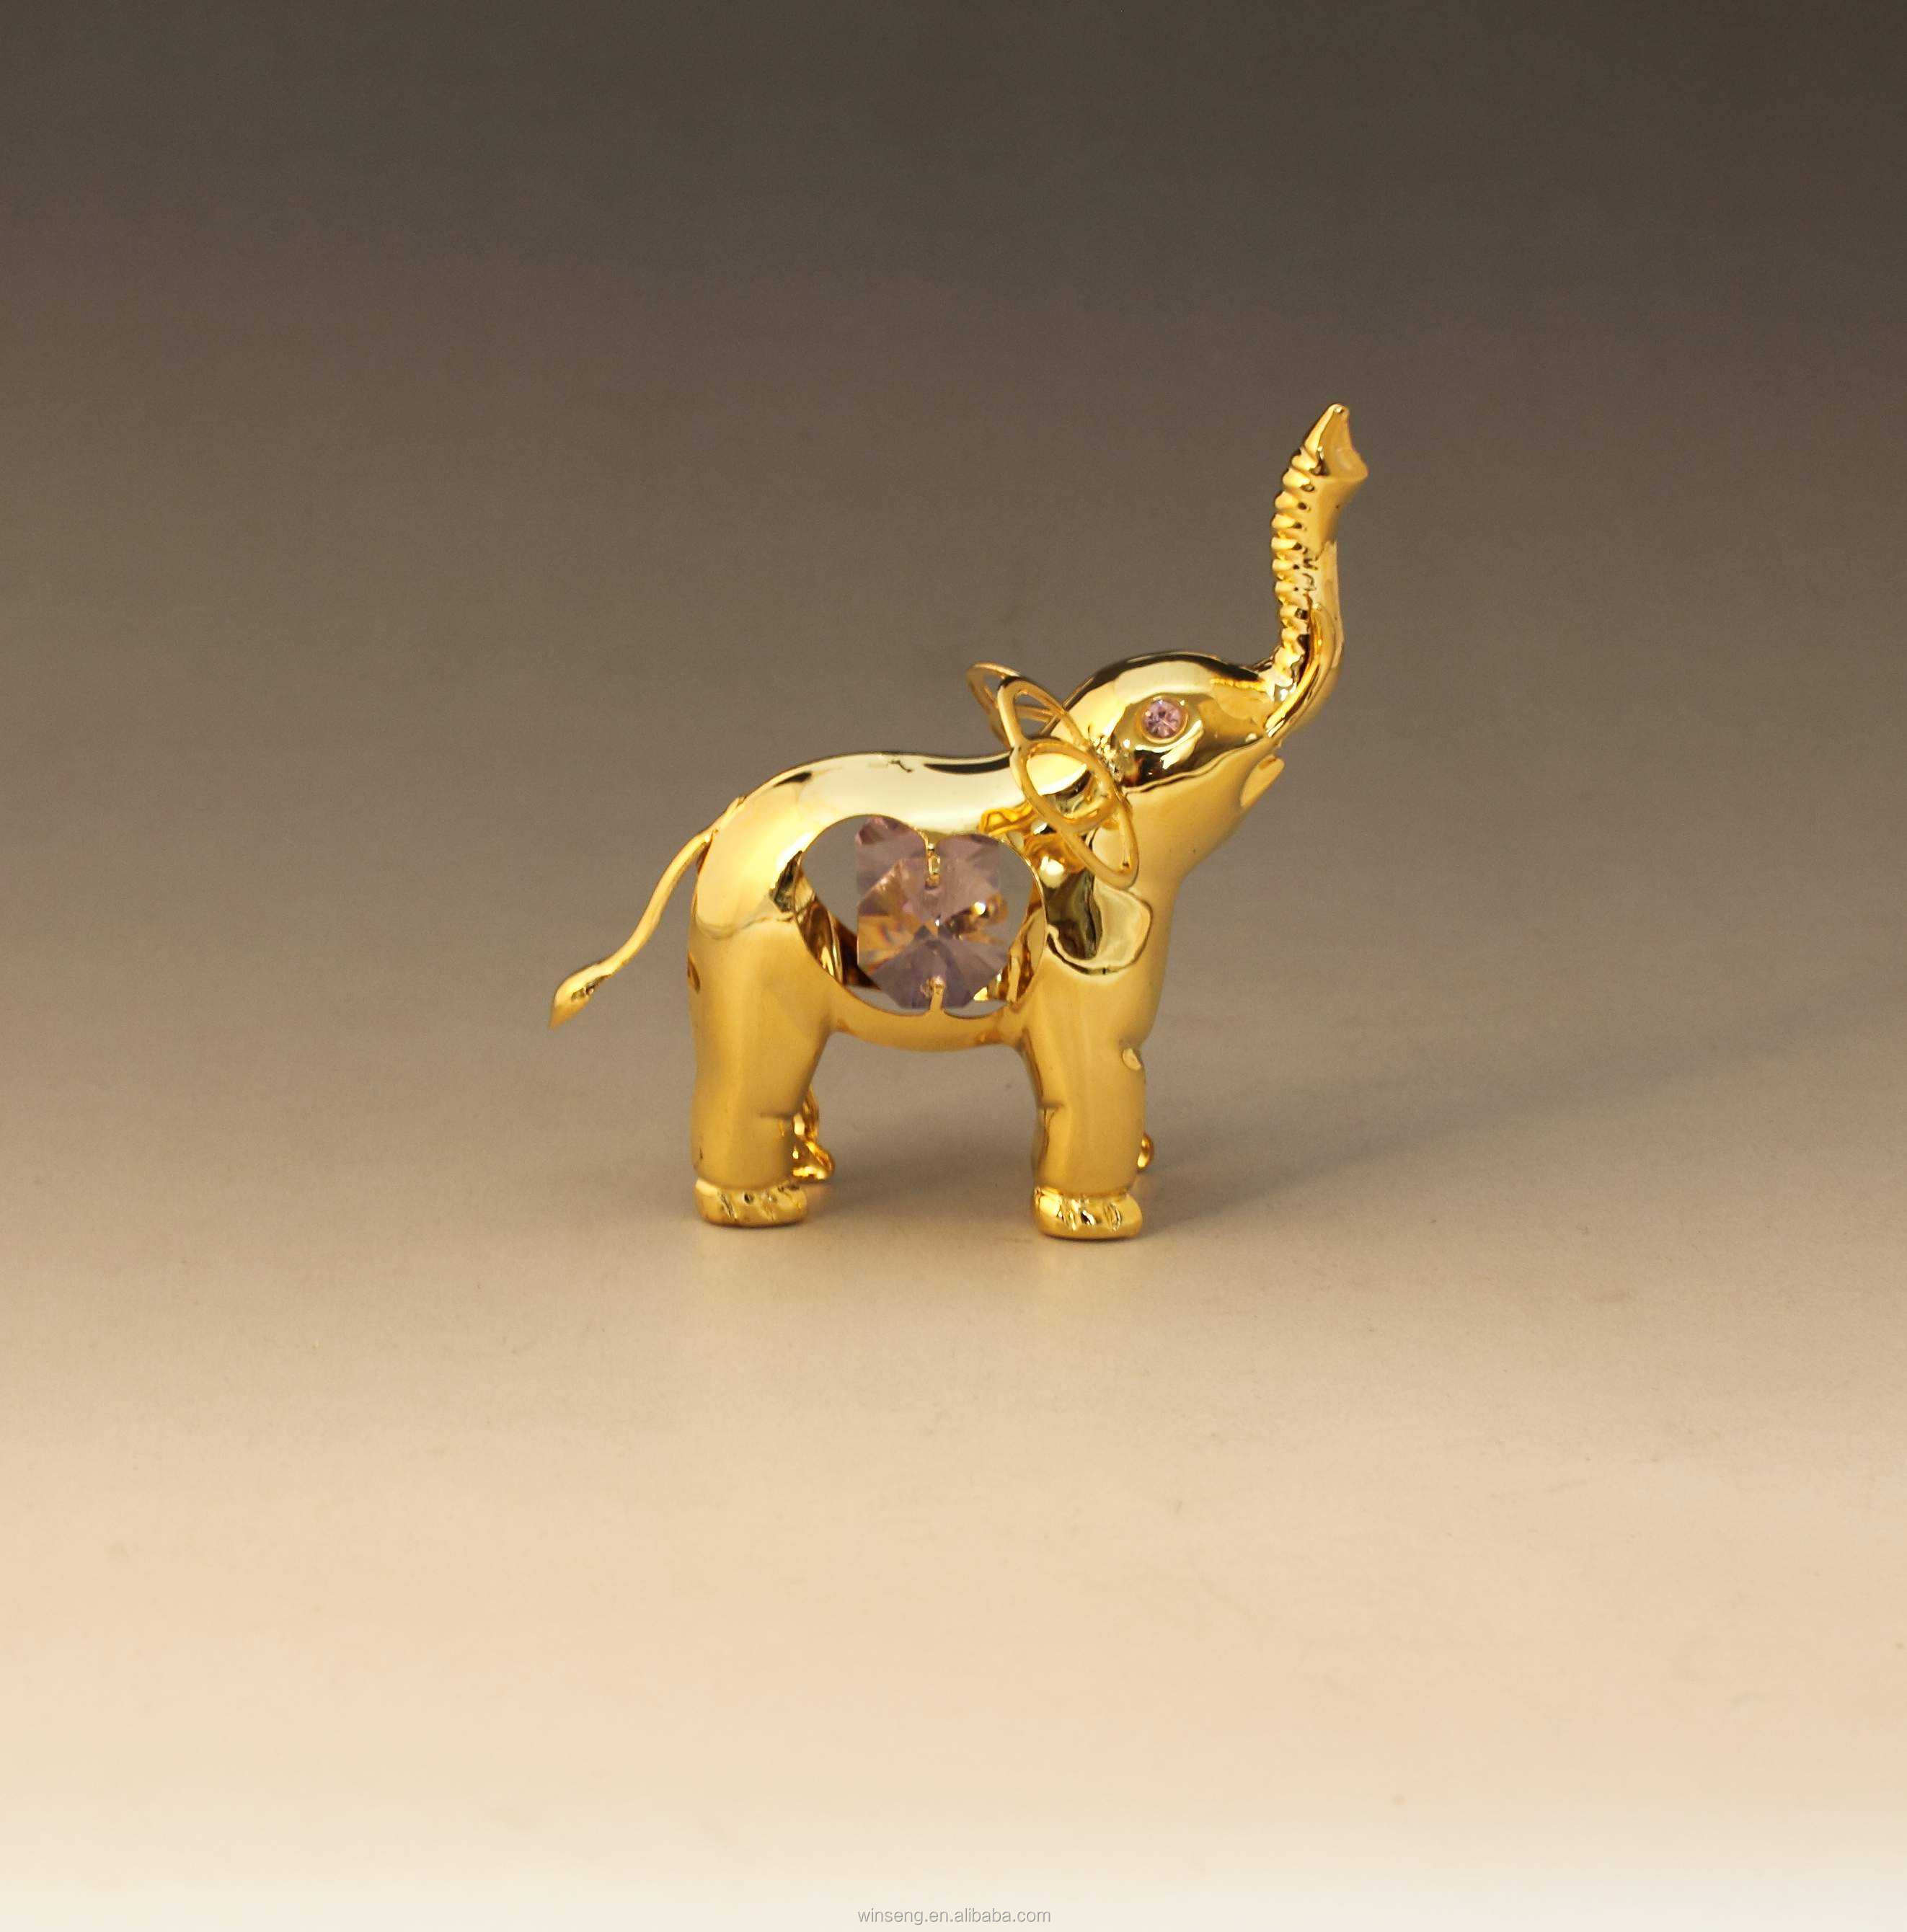 24k Gold Plated Decorative Elephant Stand For Home Decor